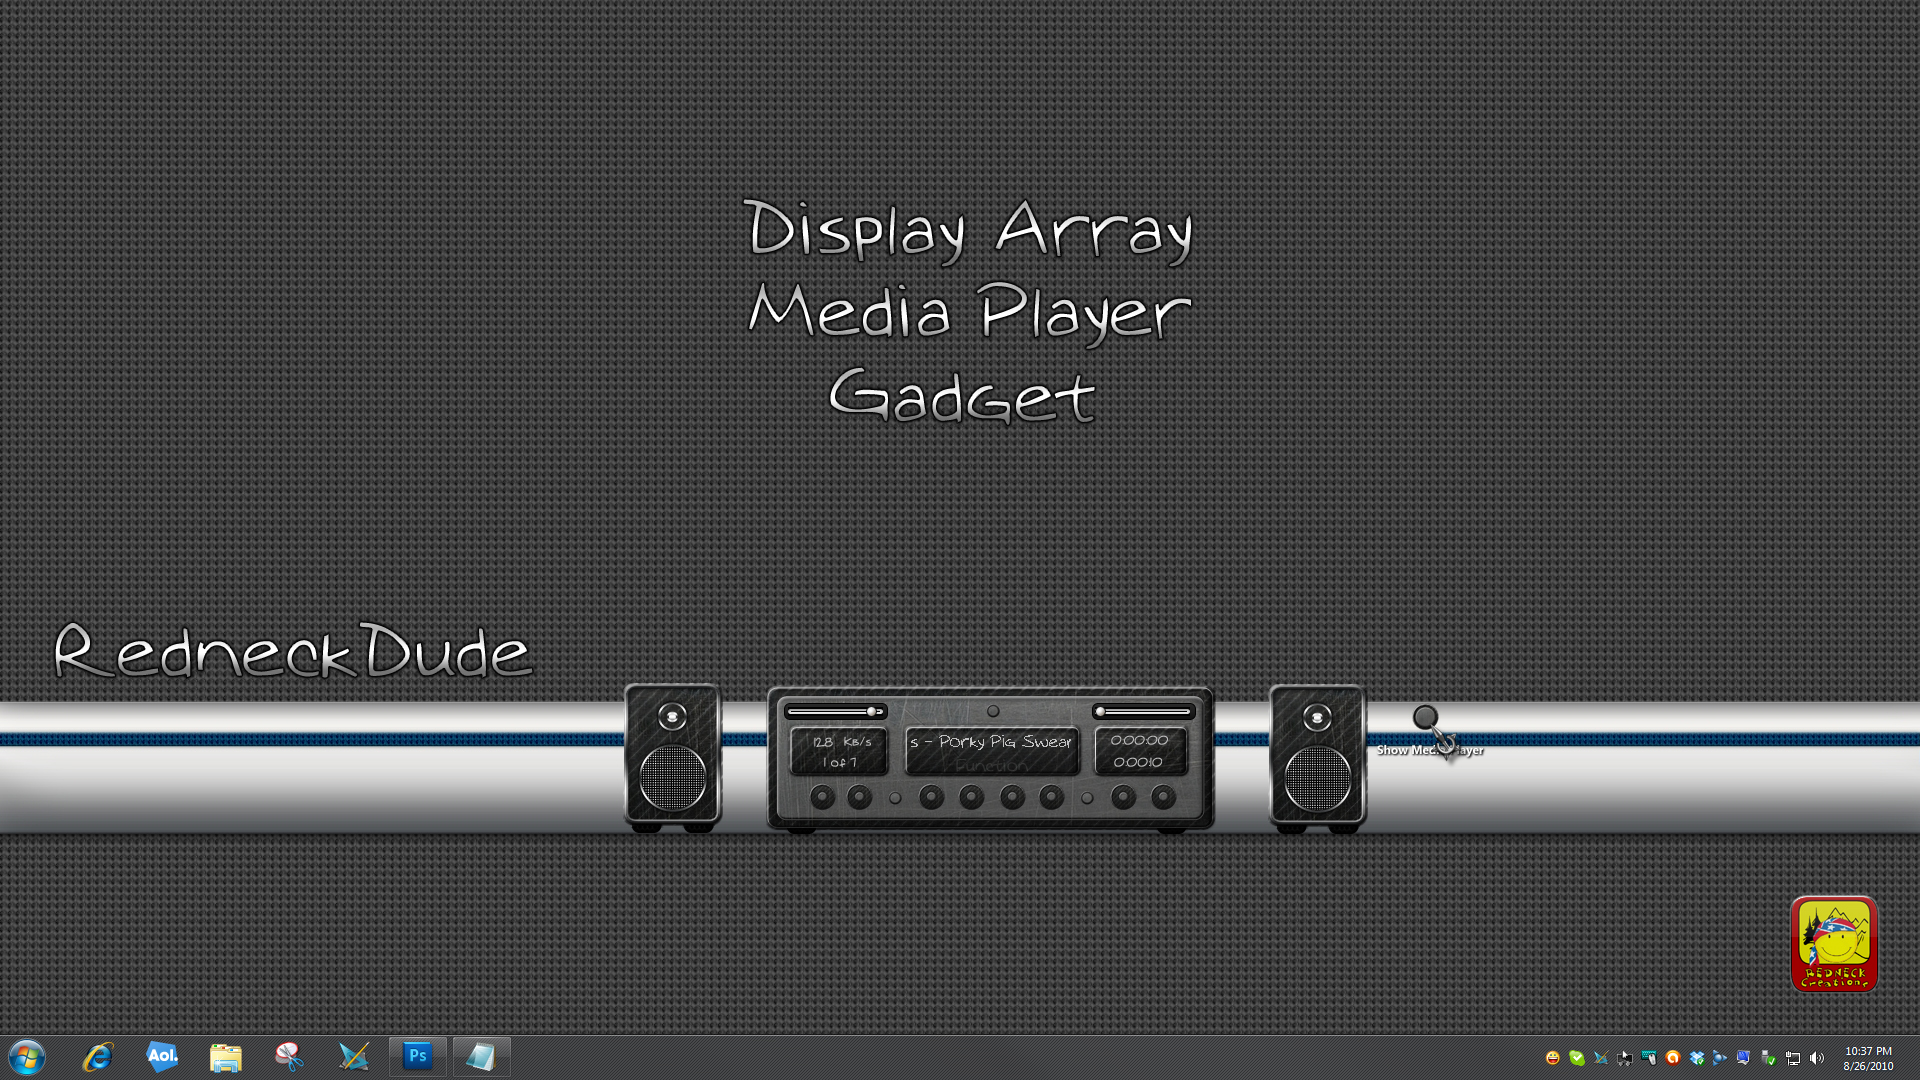 Display Array Media Player Gadget